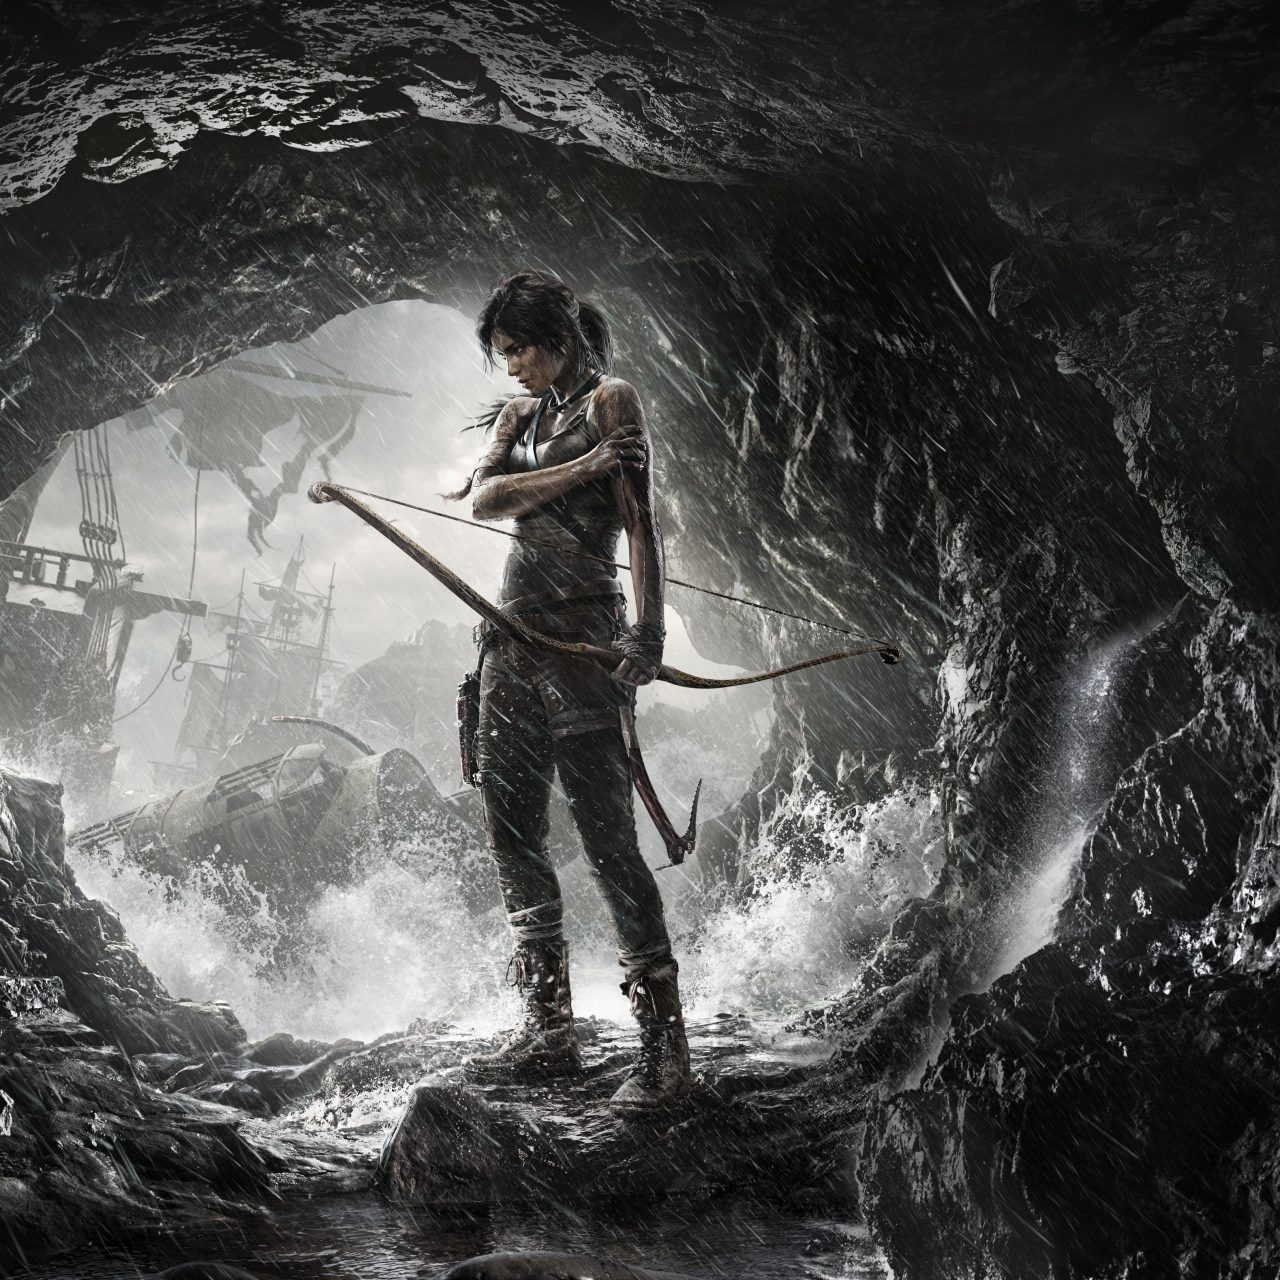 Tomb Rider Wallpaper: Shadow Of The Tomb Raider Game 4K Wallpaper